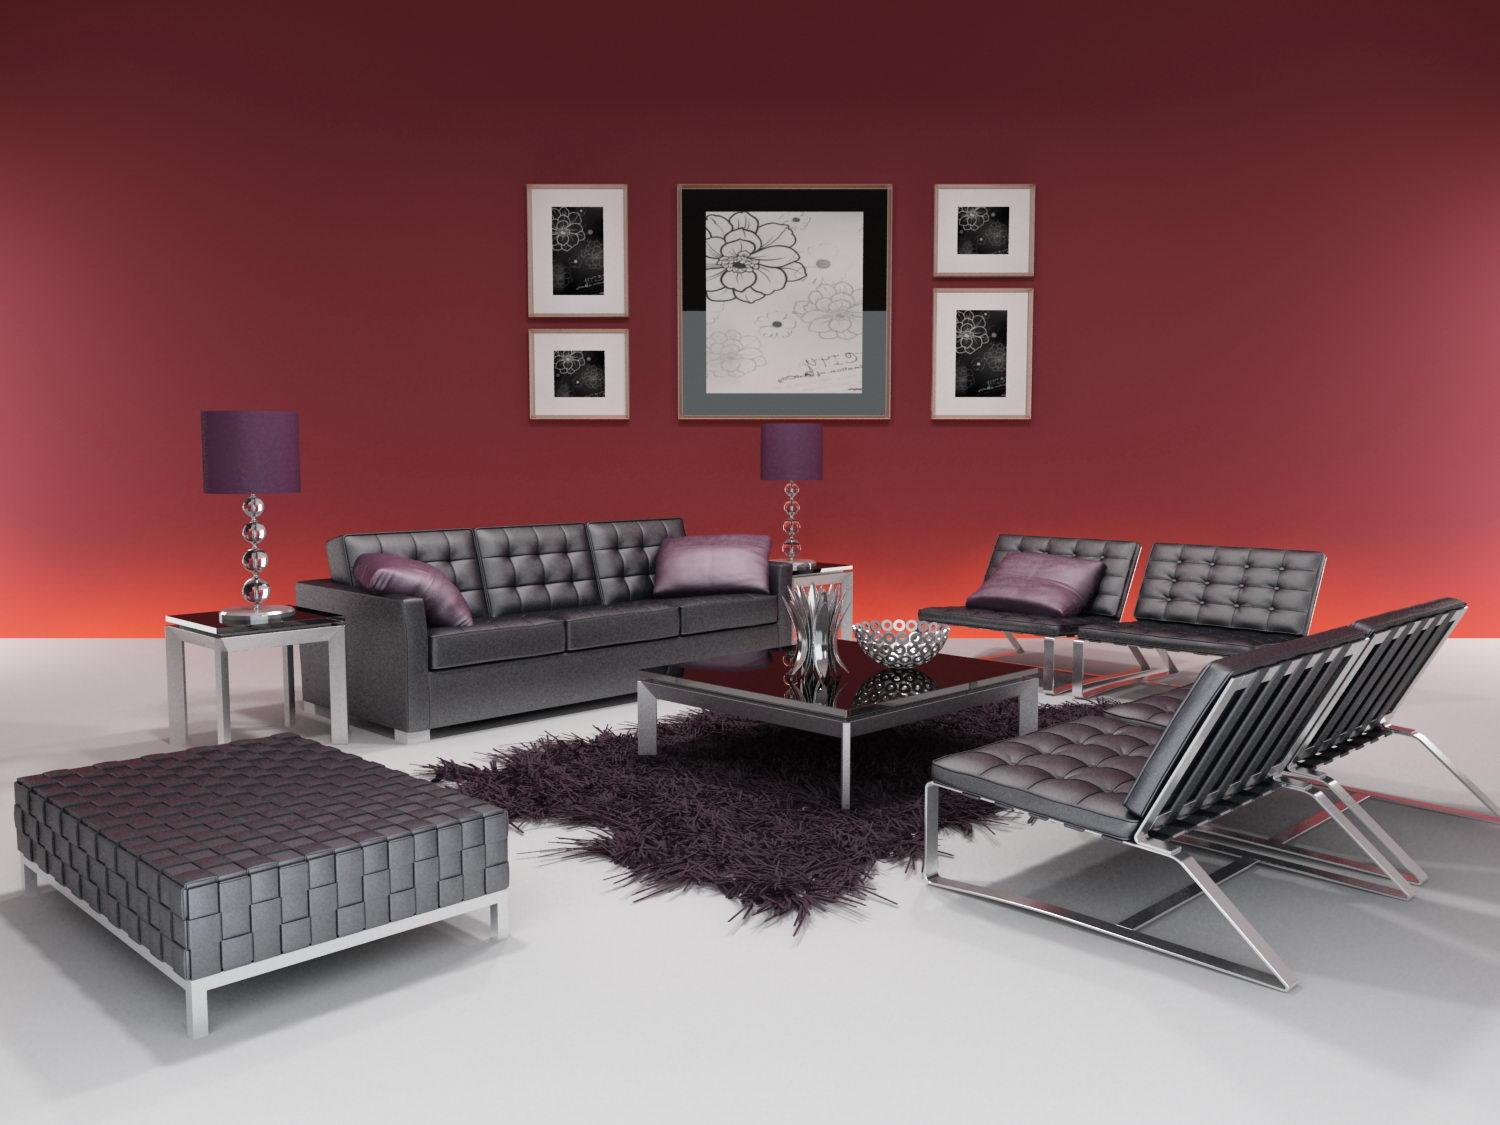 Ultra-modern minimalist sofa 3D model (including materials)